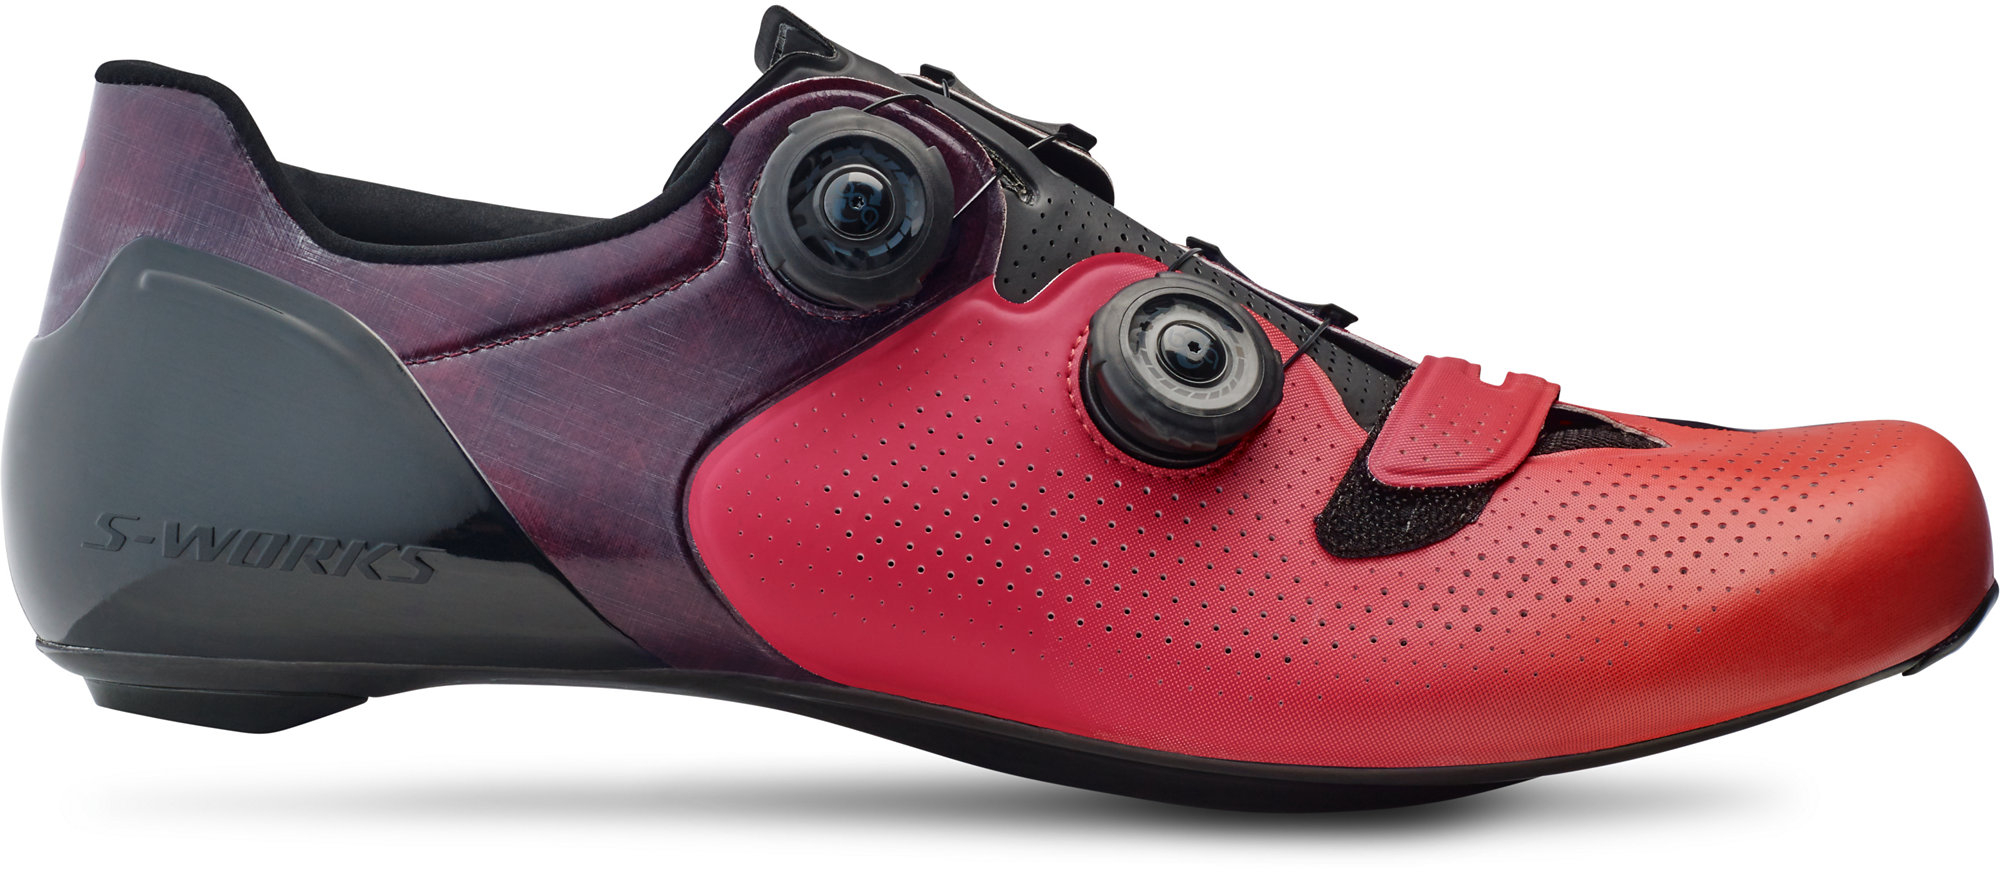 7aa5cb12968 2018 Specialized S-Works 6 Road Shoes - Specialized Concept Store